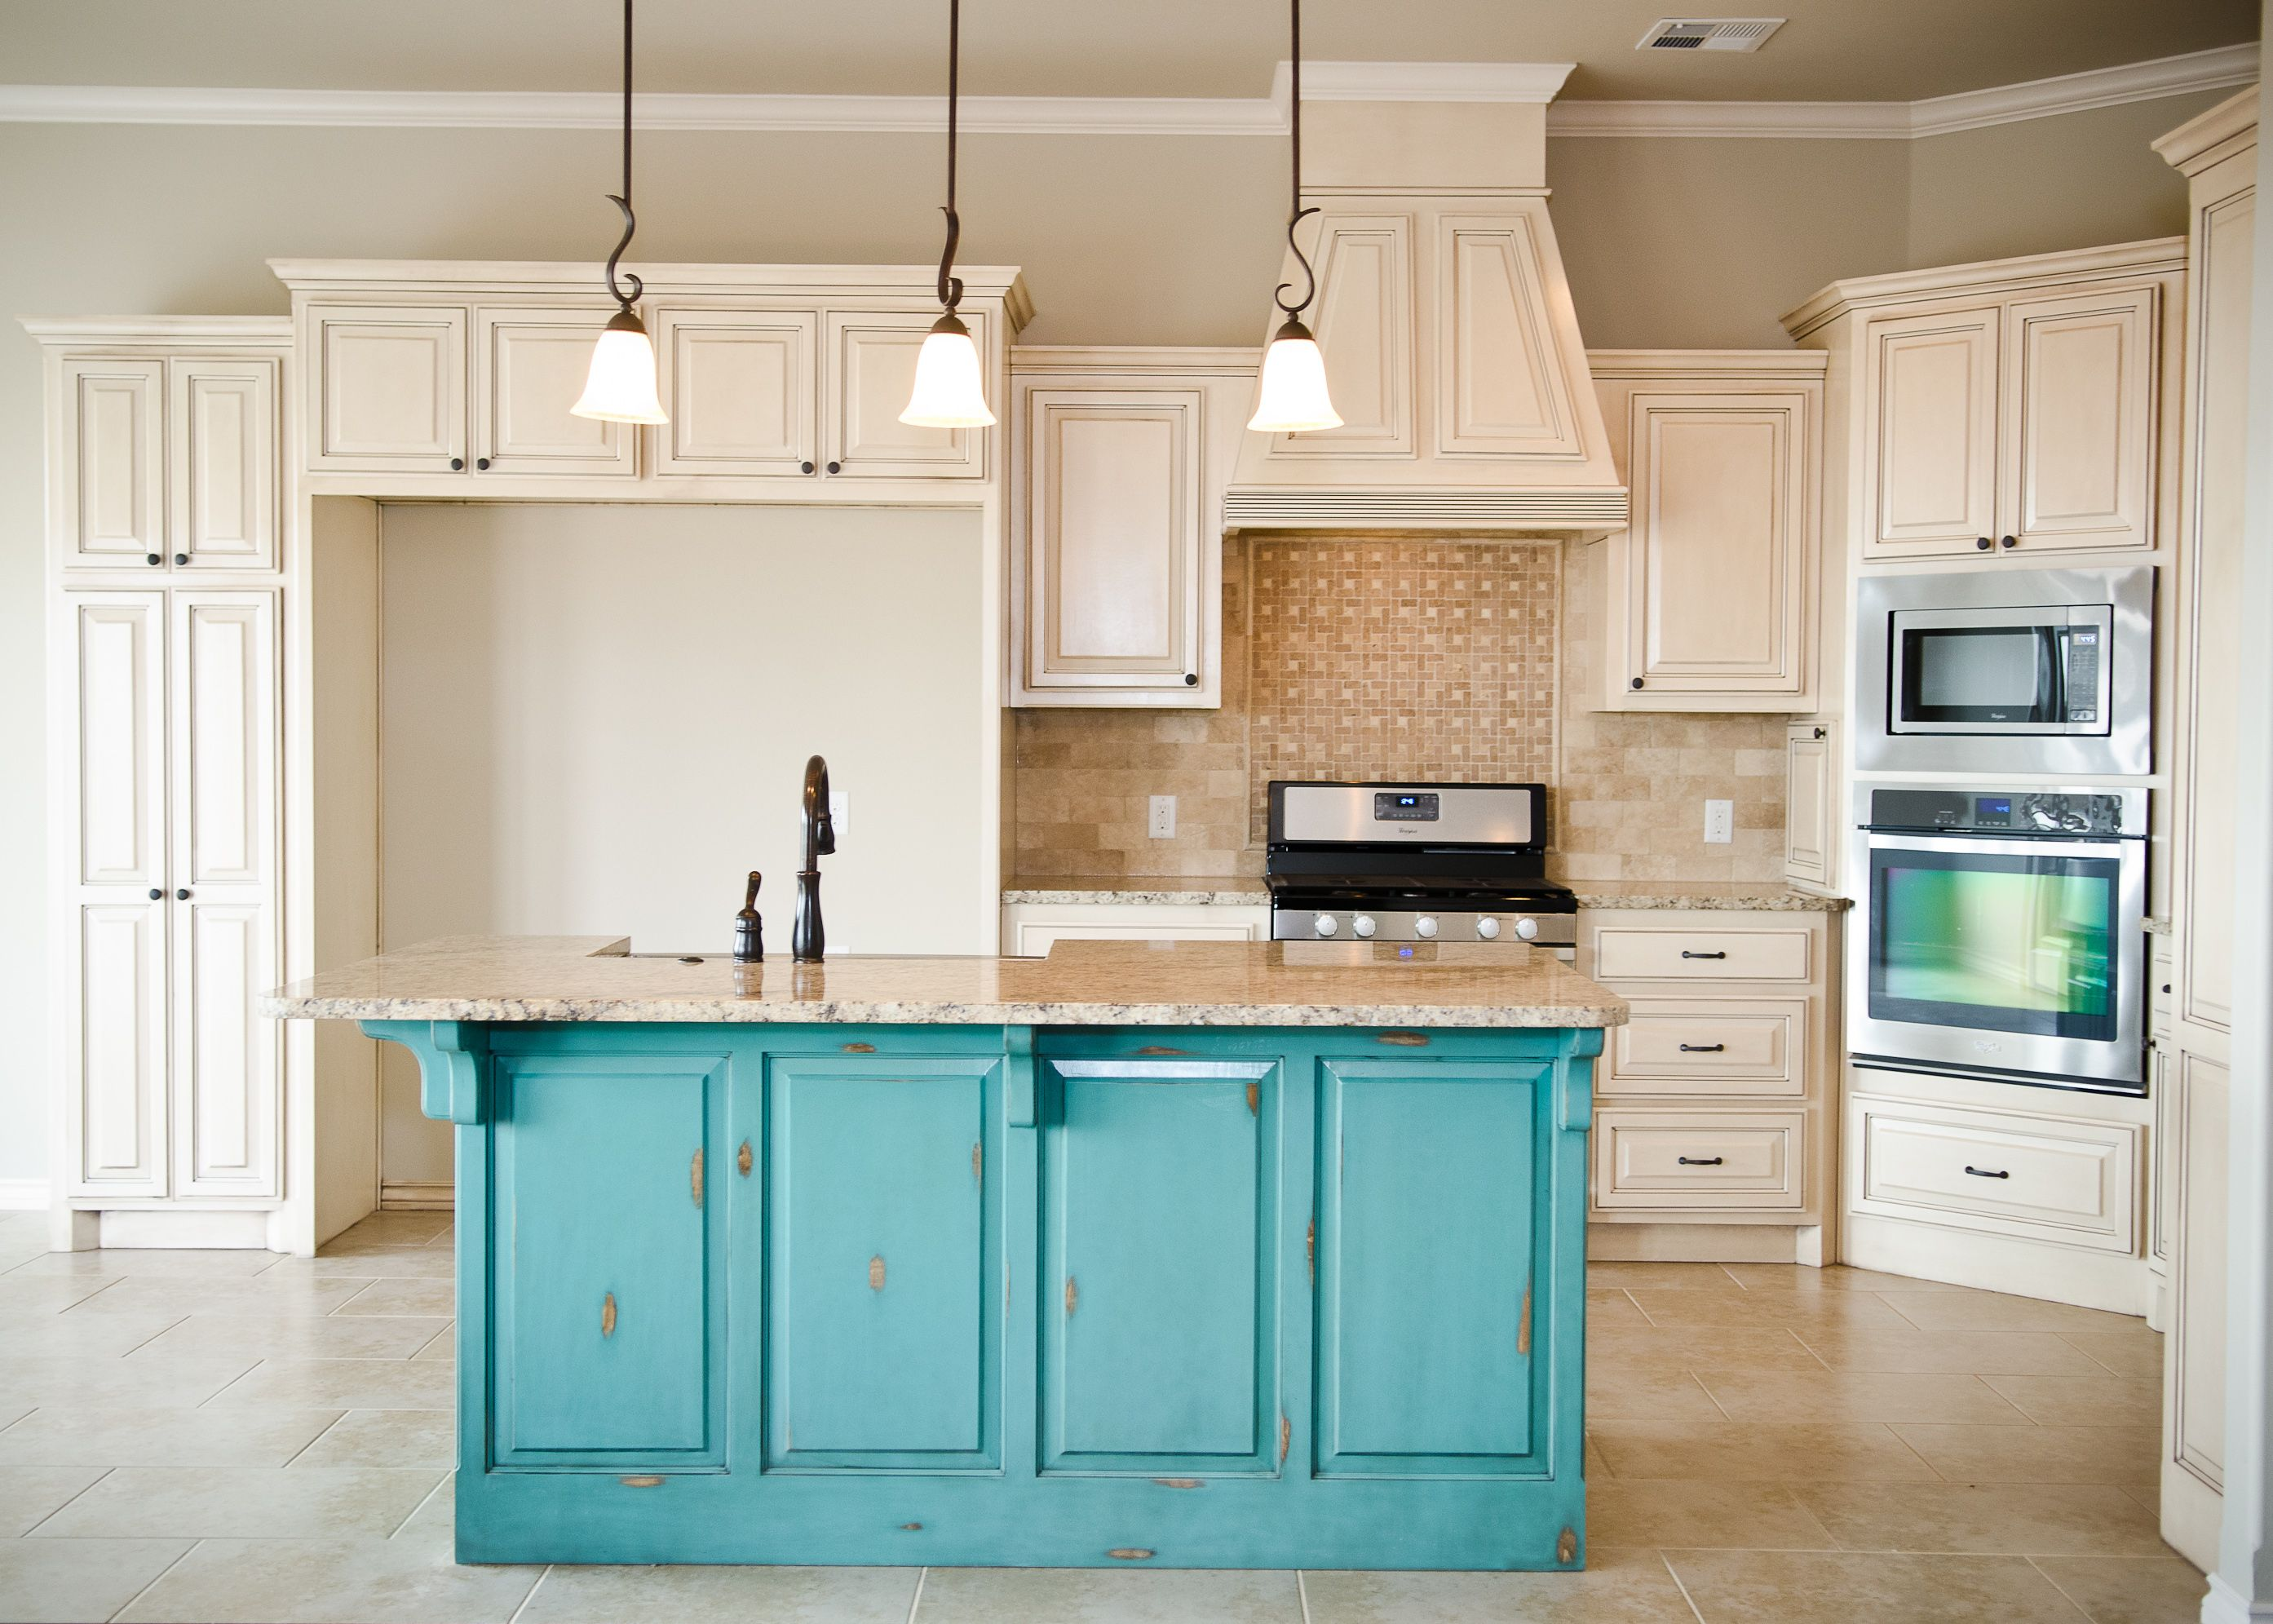 Pin By Beacon Homes On Beacon Kitchens Turquoise Kitchen Cabinets Kitchen Cabinet Design Distressed Kitchen